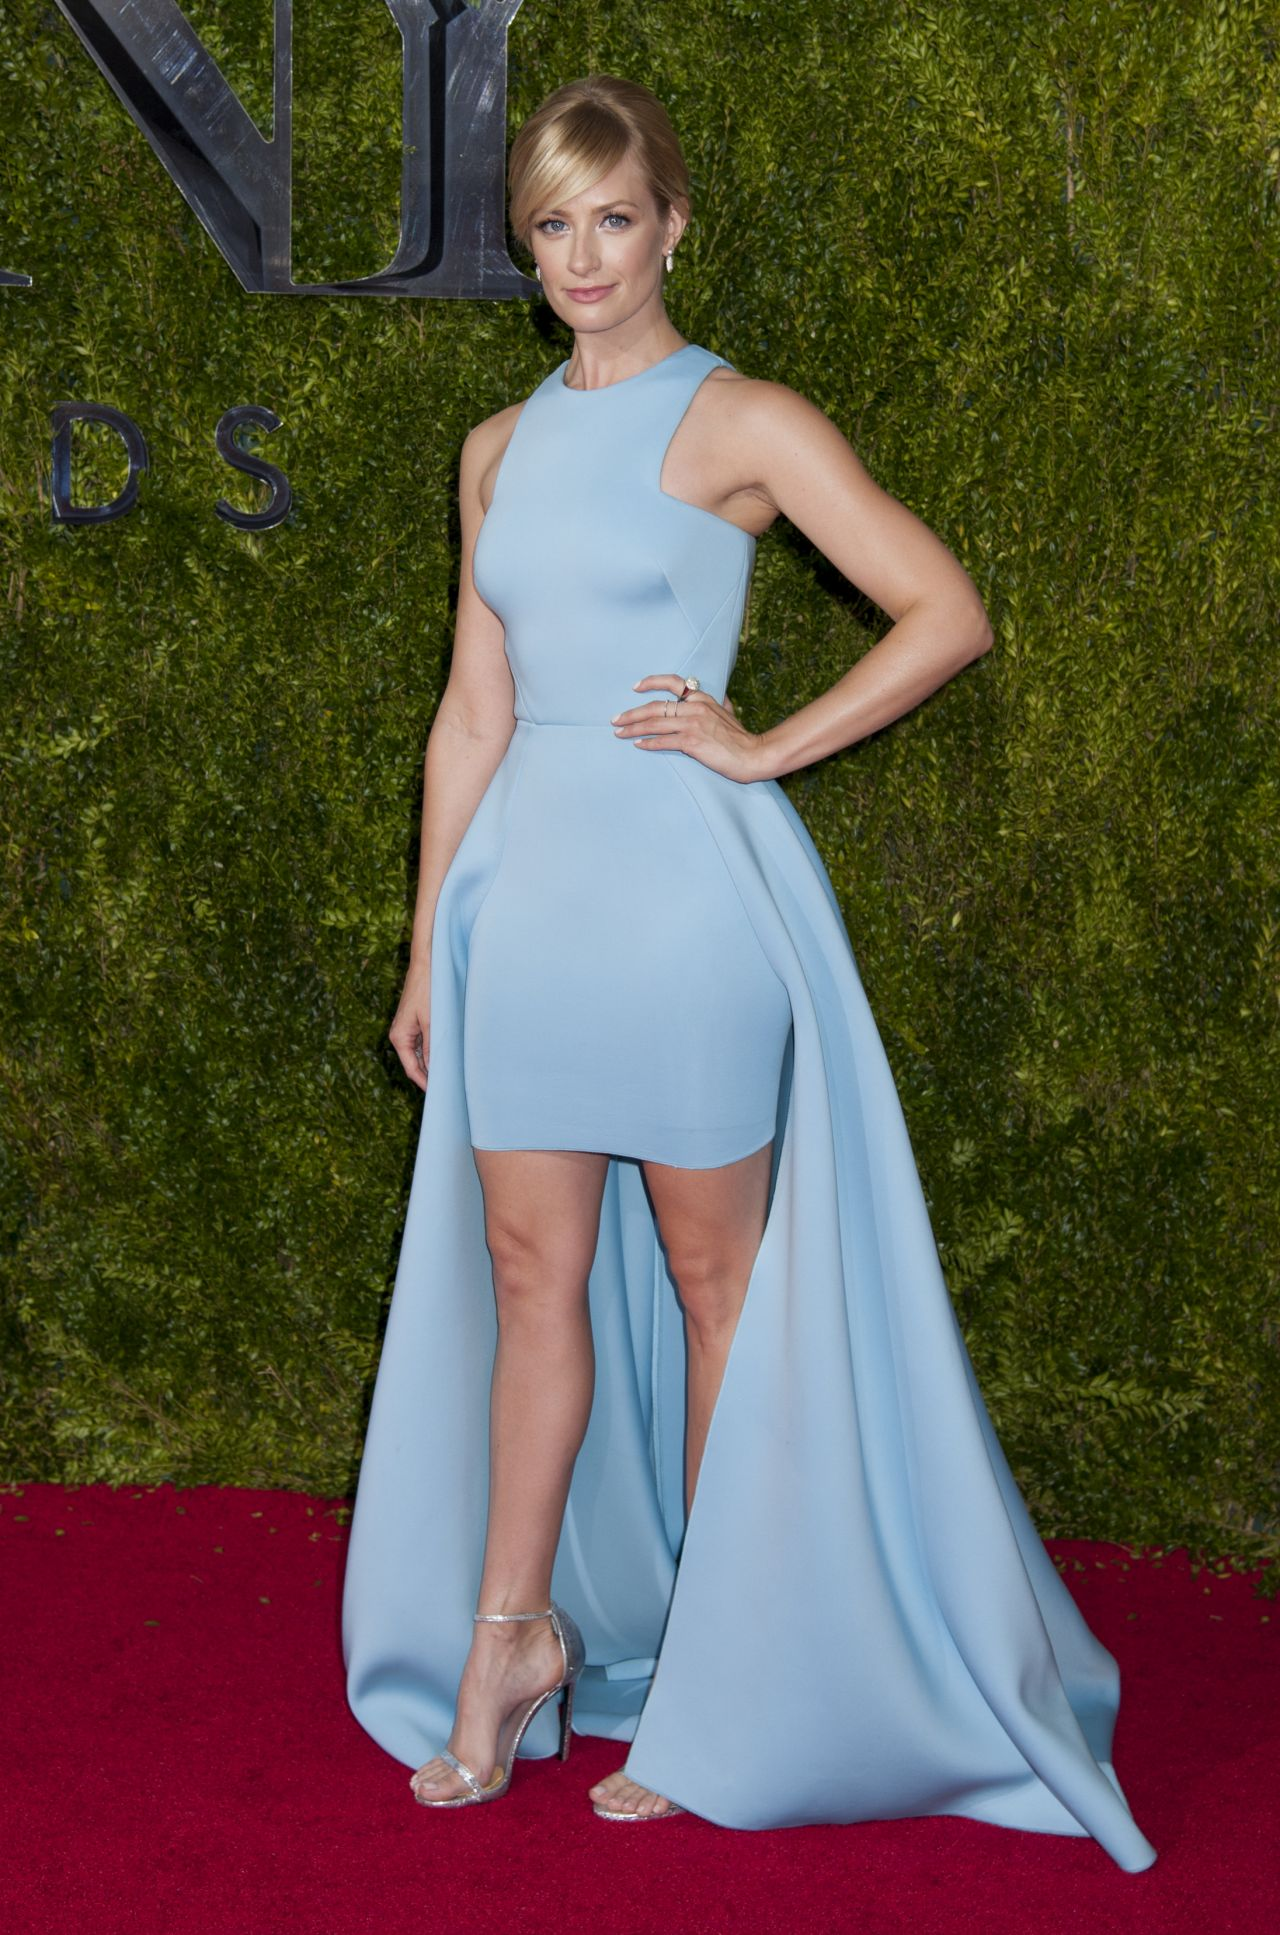 beth-behrs-on-red-carpet-2015-tony-awards-in-new-york-city_3